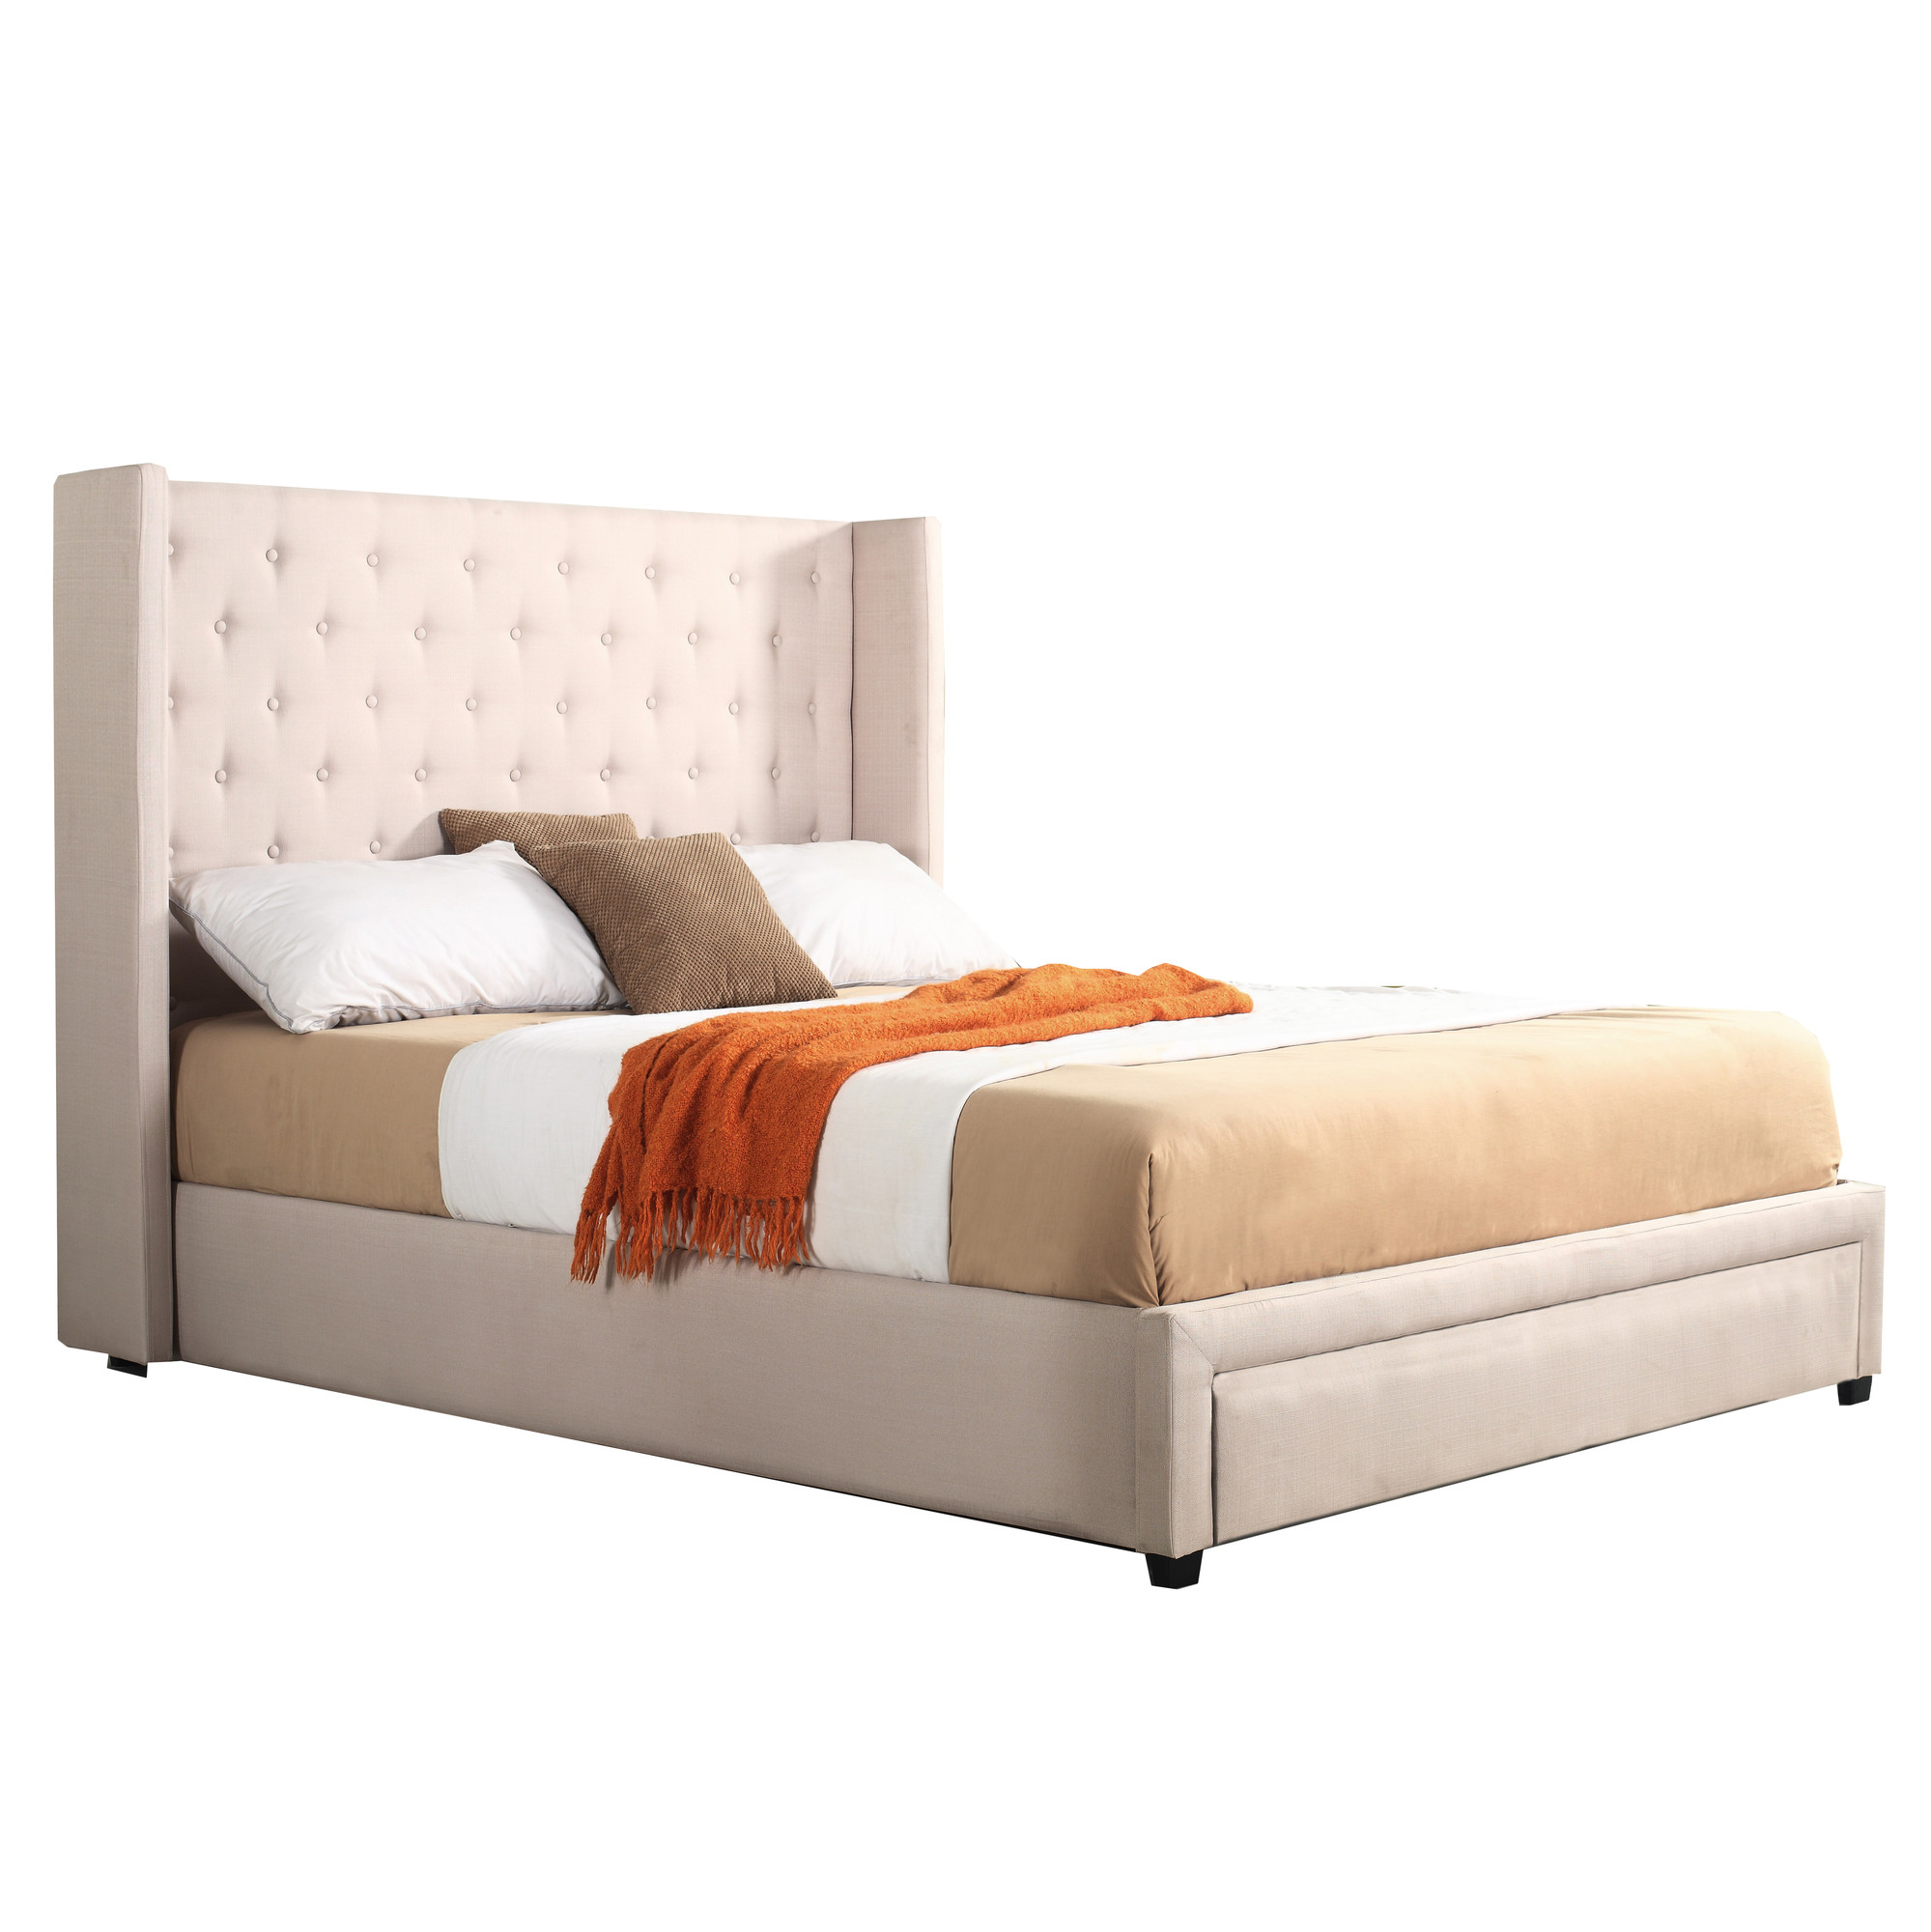 Queen Size Bed: NEW Ivory Button Tufted Wing Queen Size Bed Frame With